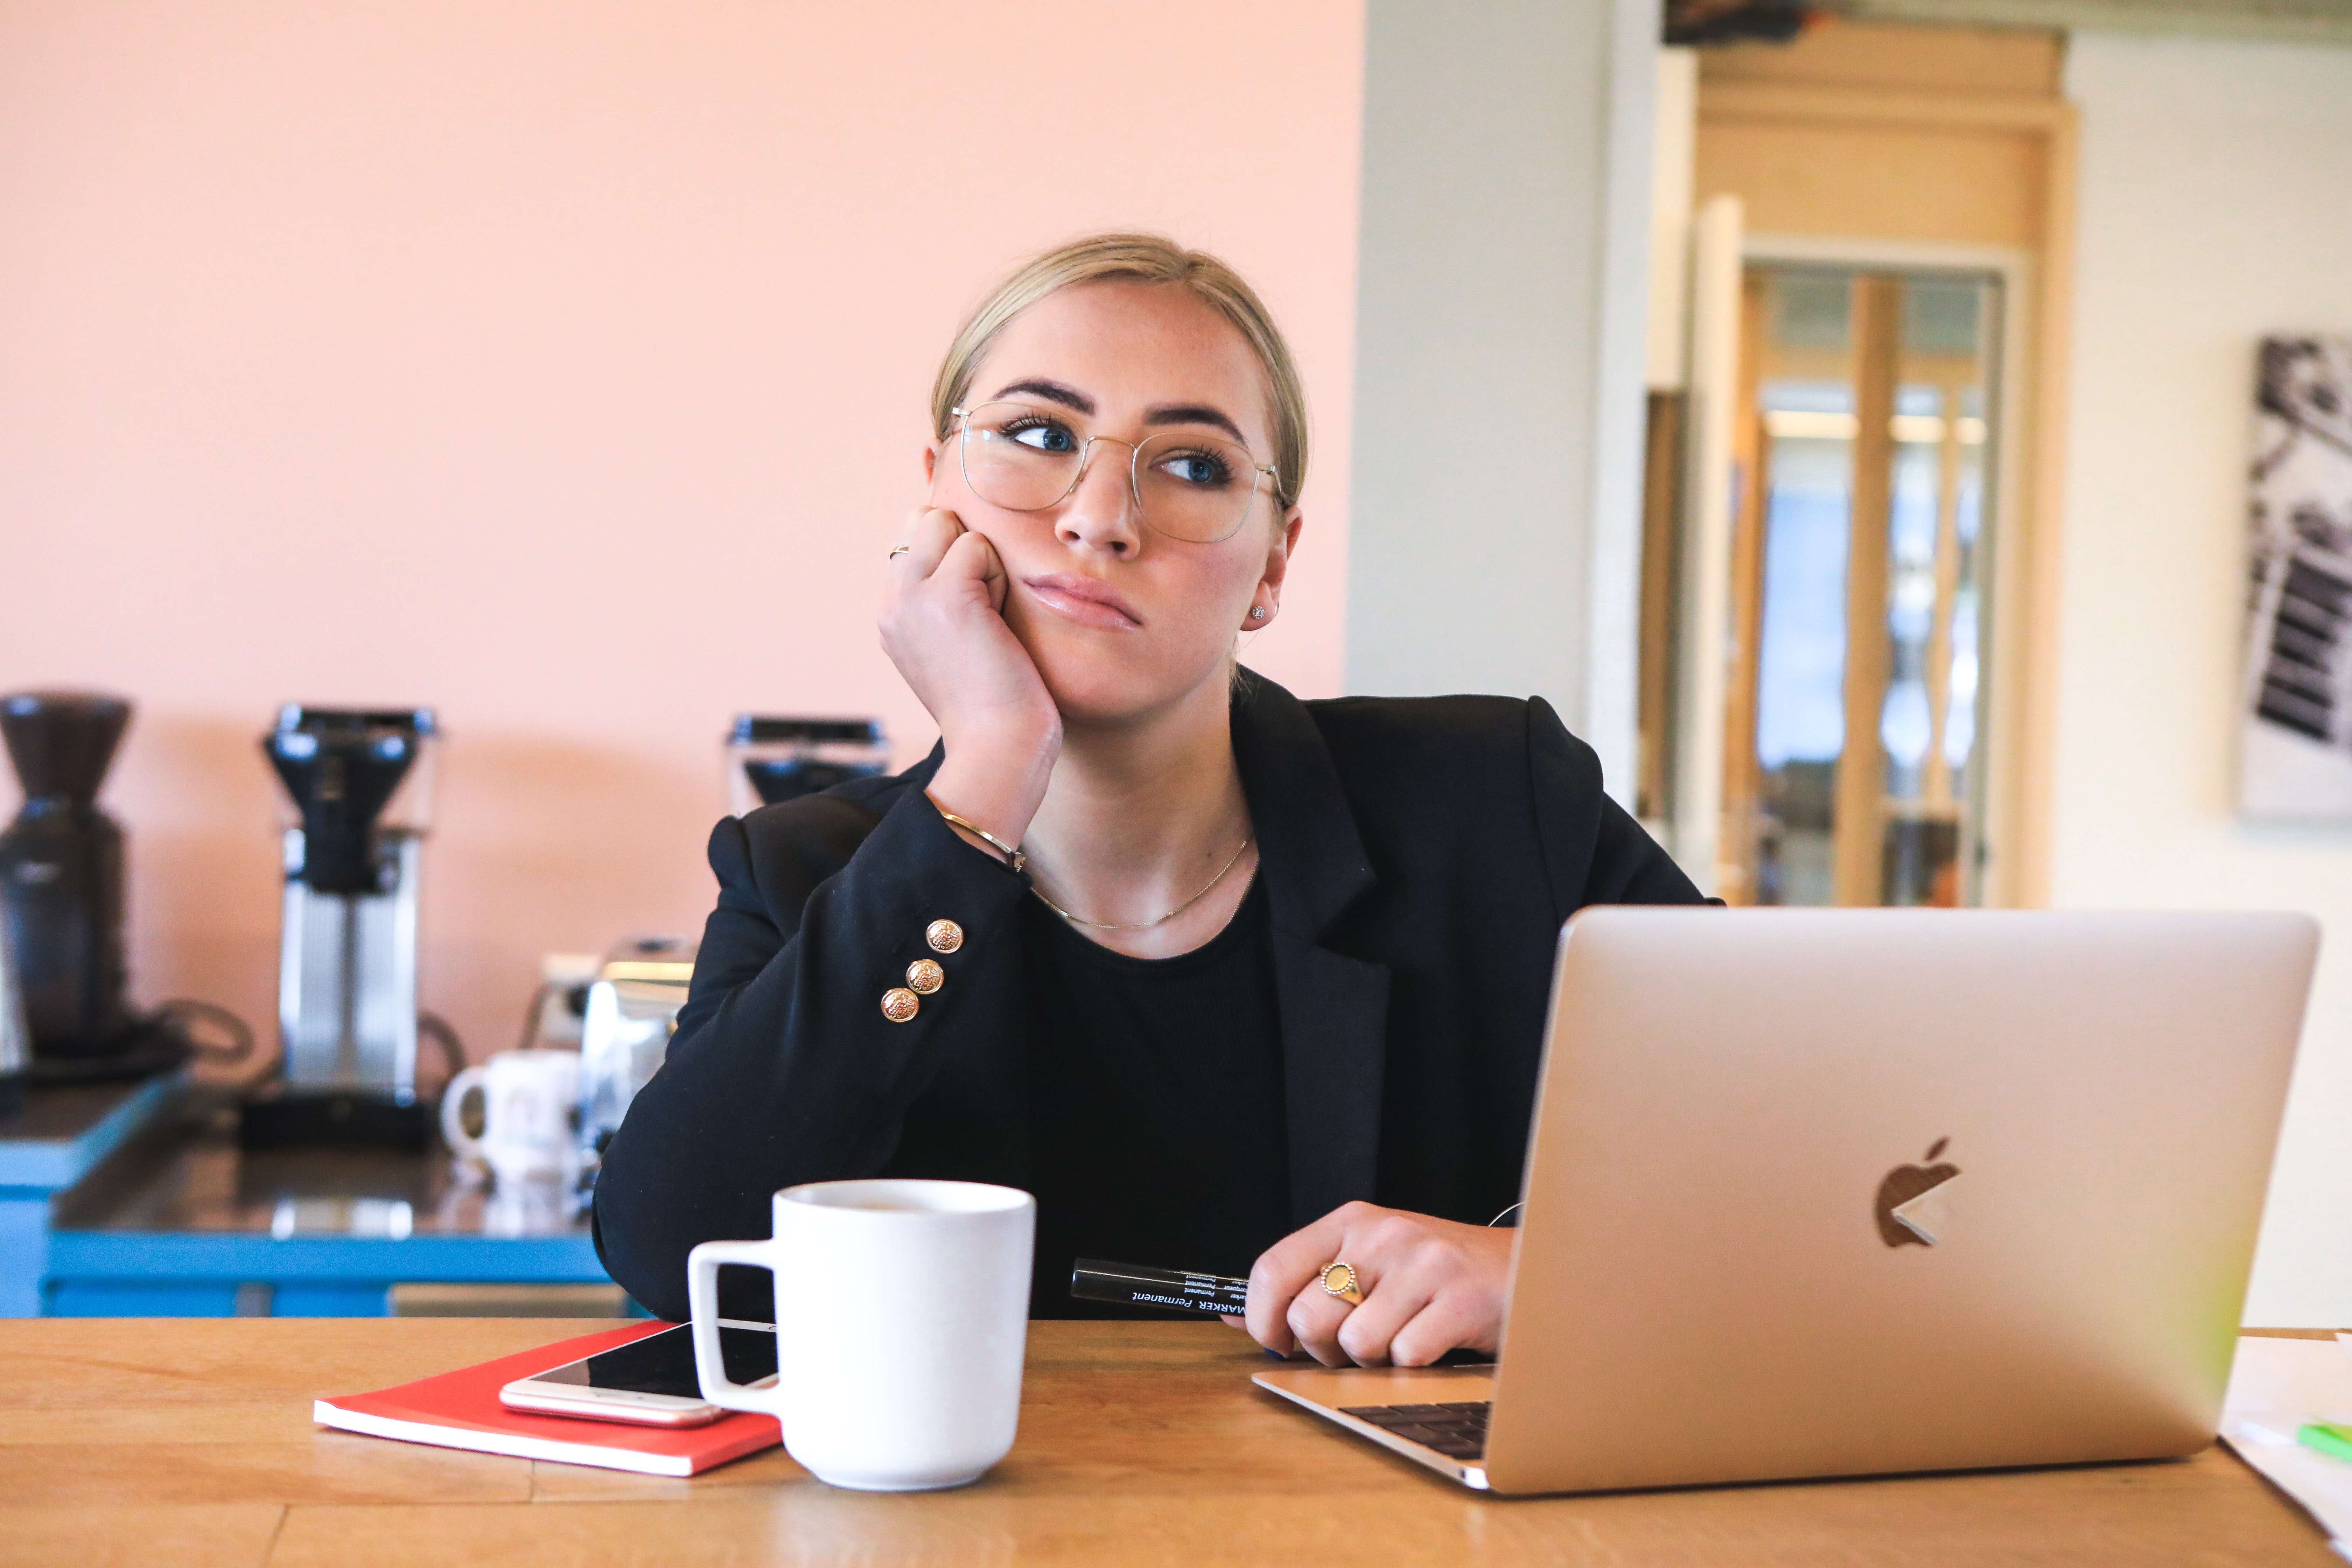 11 Tips To Stay Mentally Healthy At Work And Avoid Burnout - Written by Dr. Christine